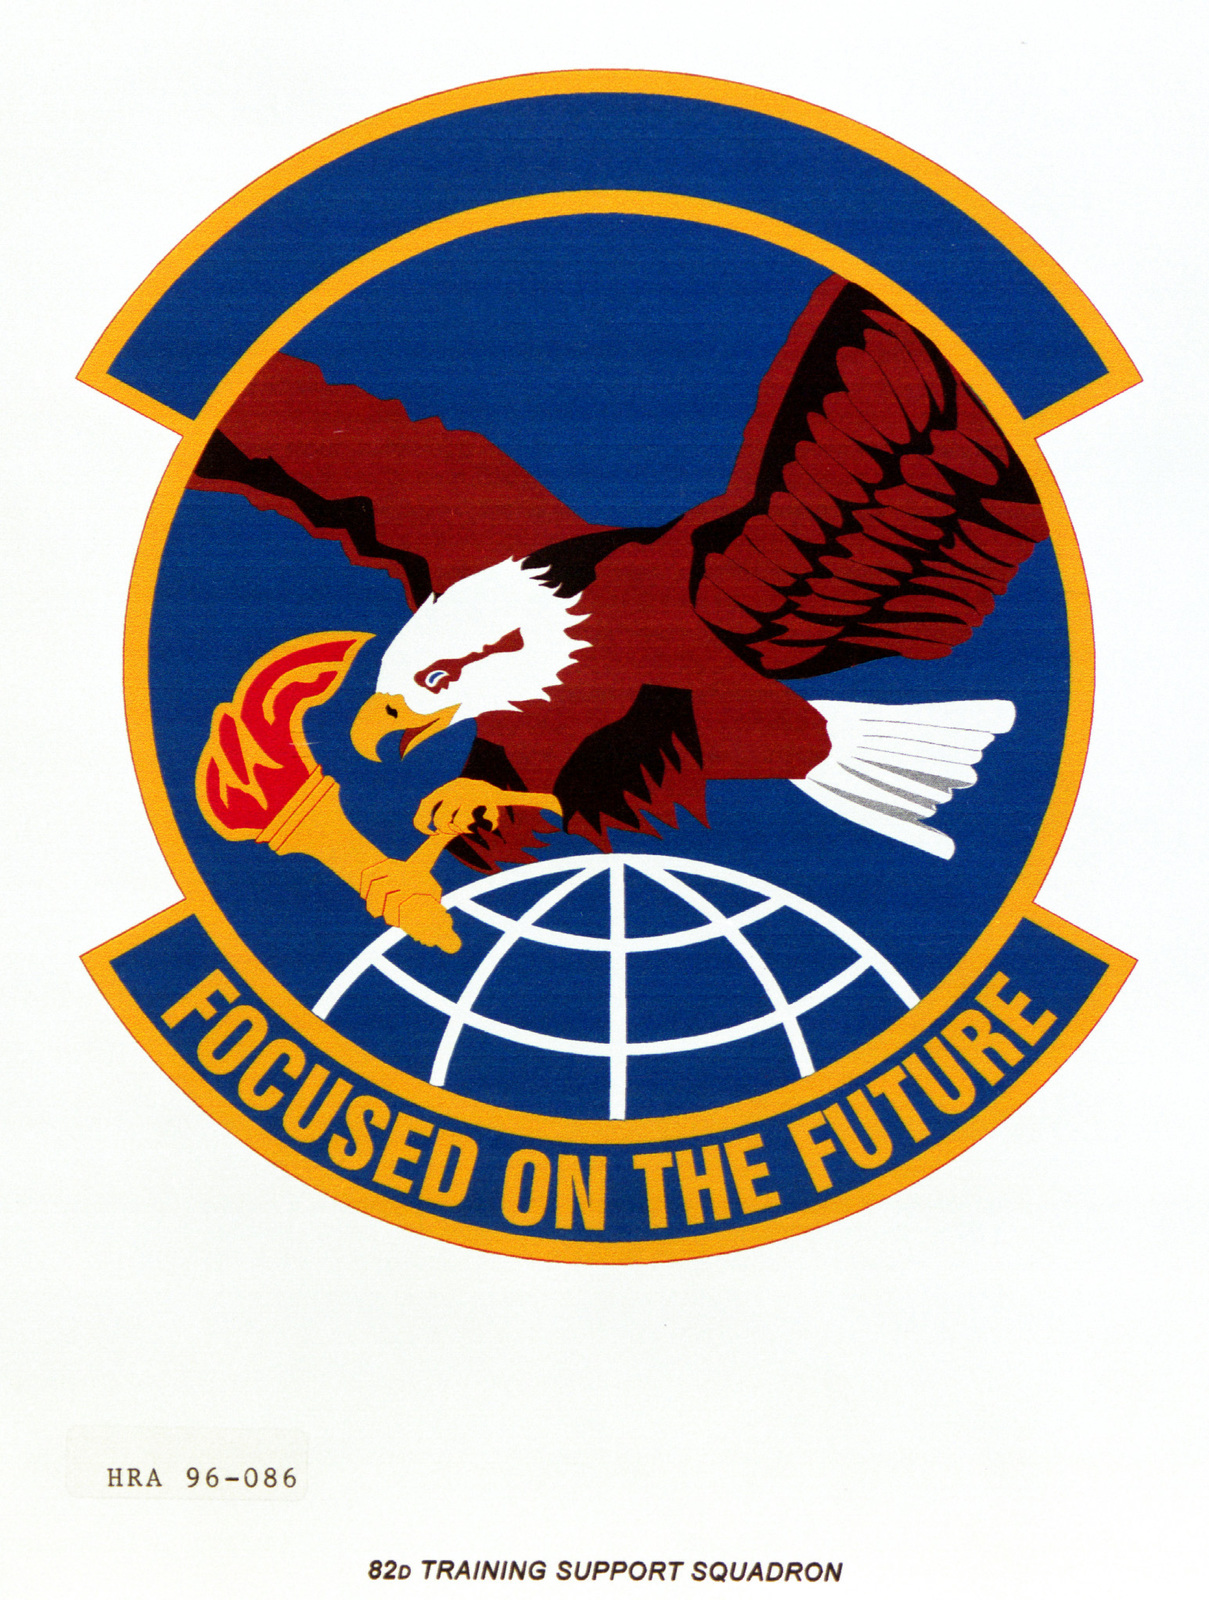 Air Force Organizational Emblem. 82nd Training Support Squadron Exact Date Shot Unknown